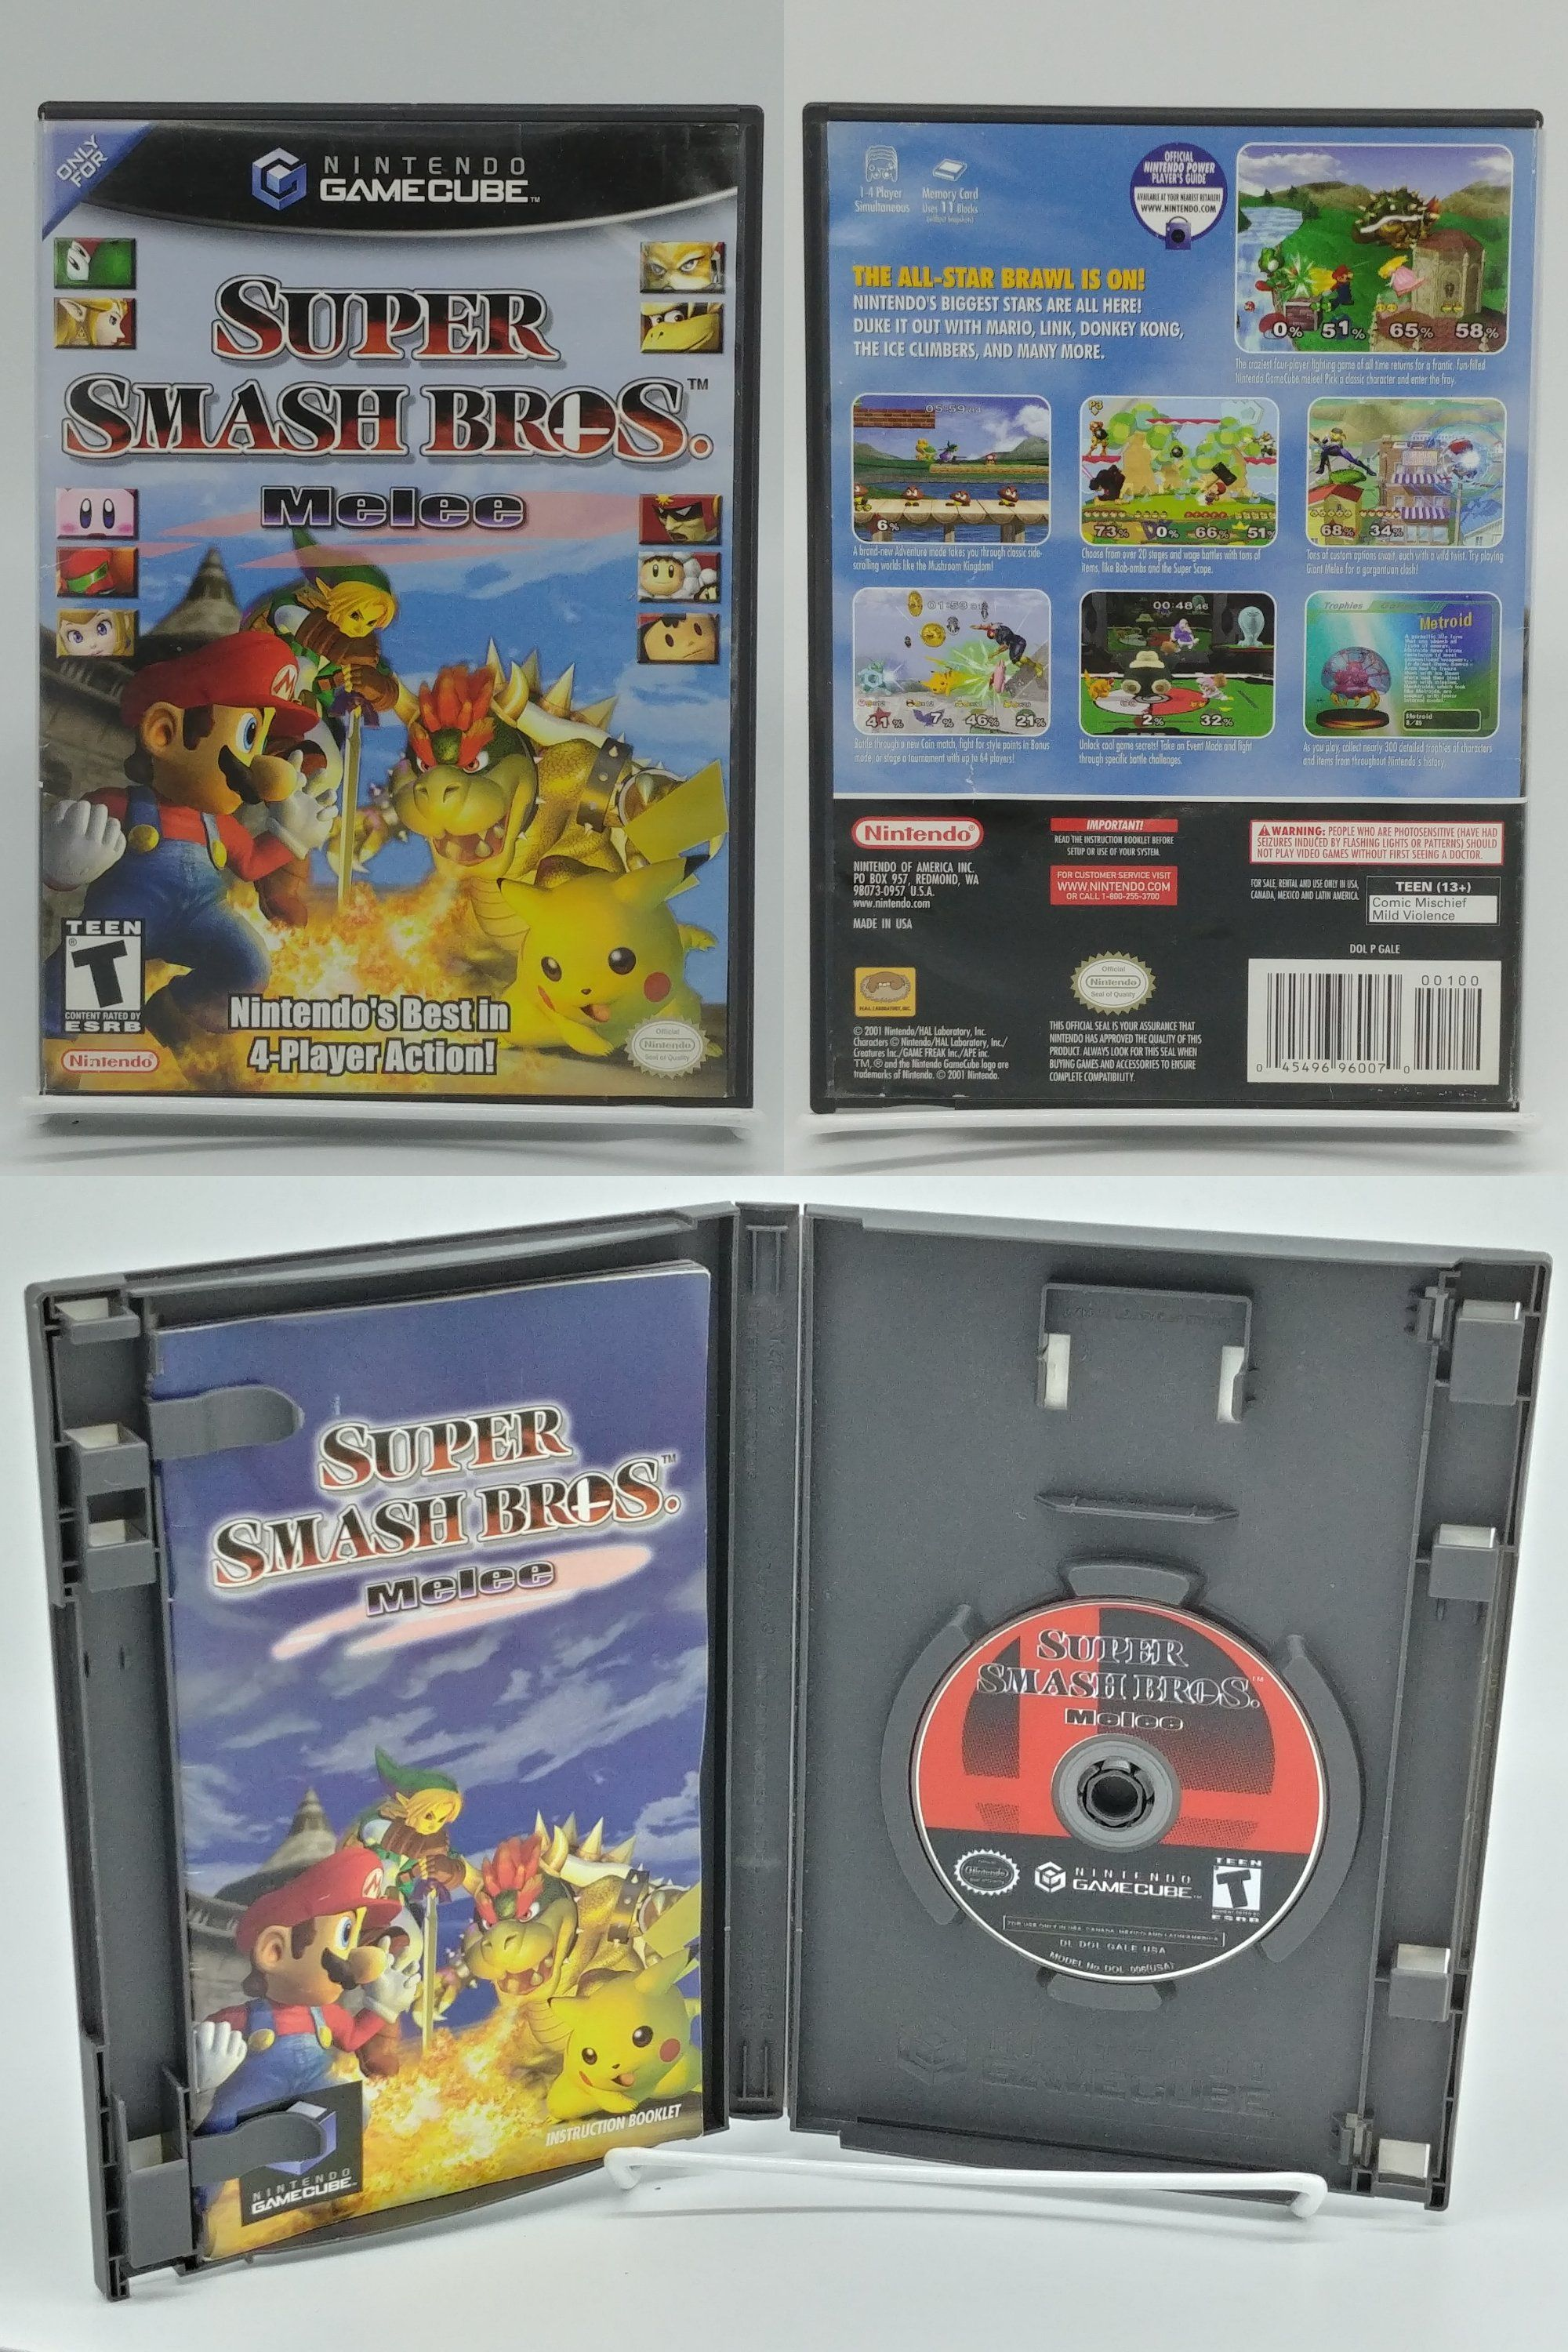 gamecube with super smash bros melee